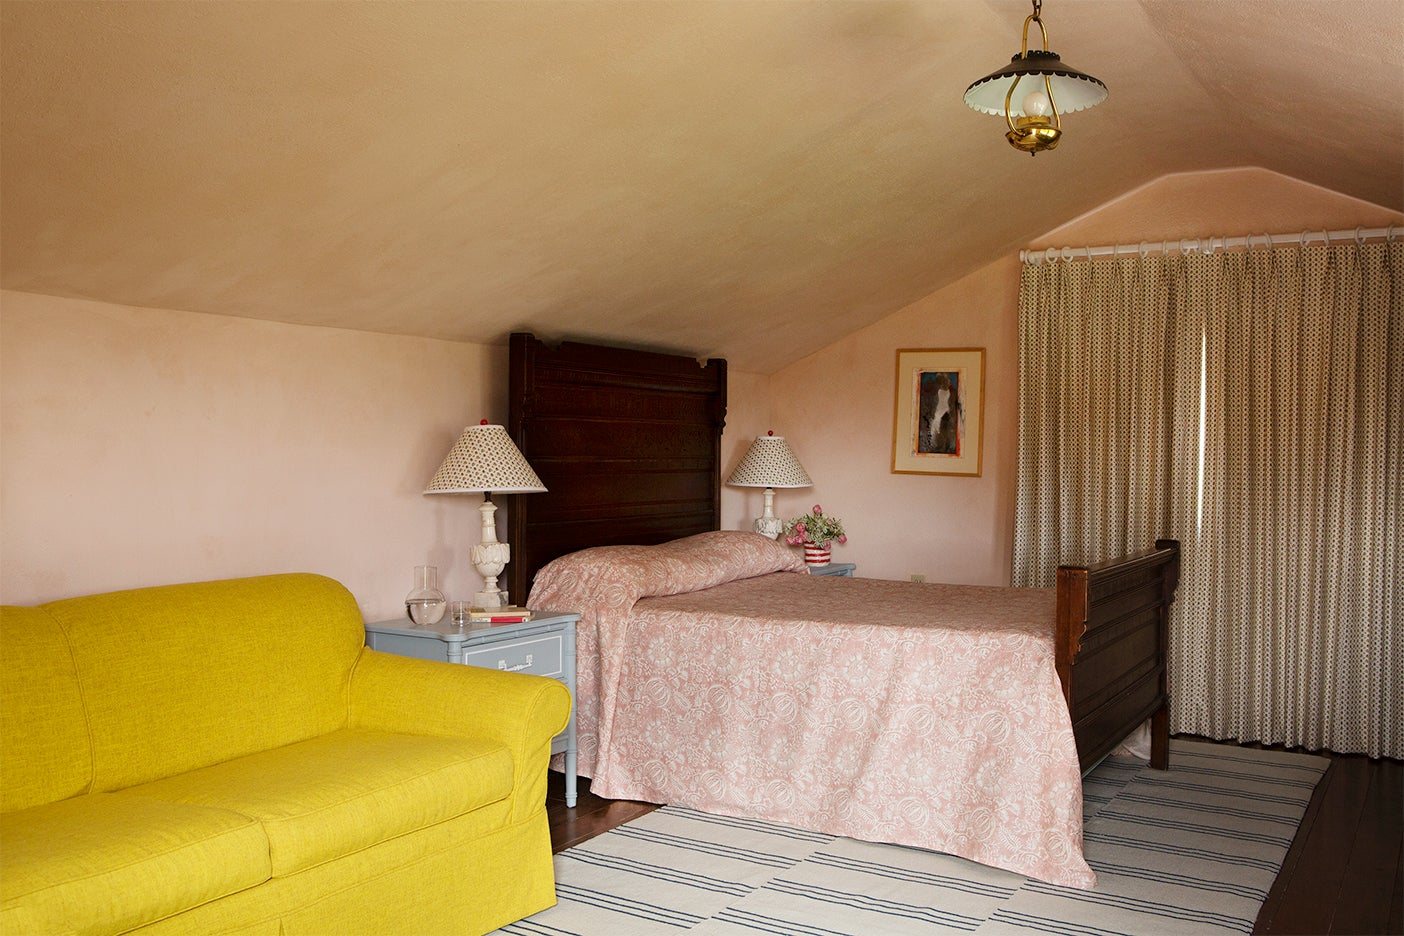 Pink lime washed walls in bedroom